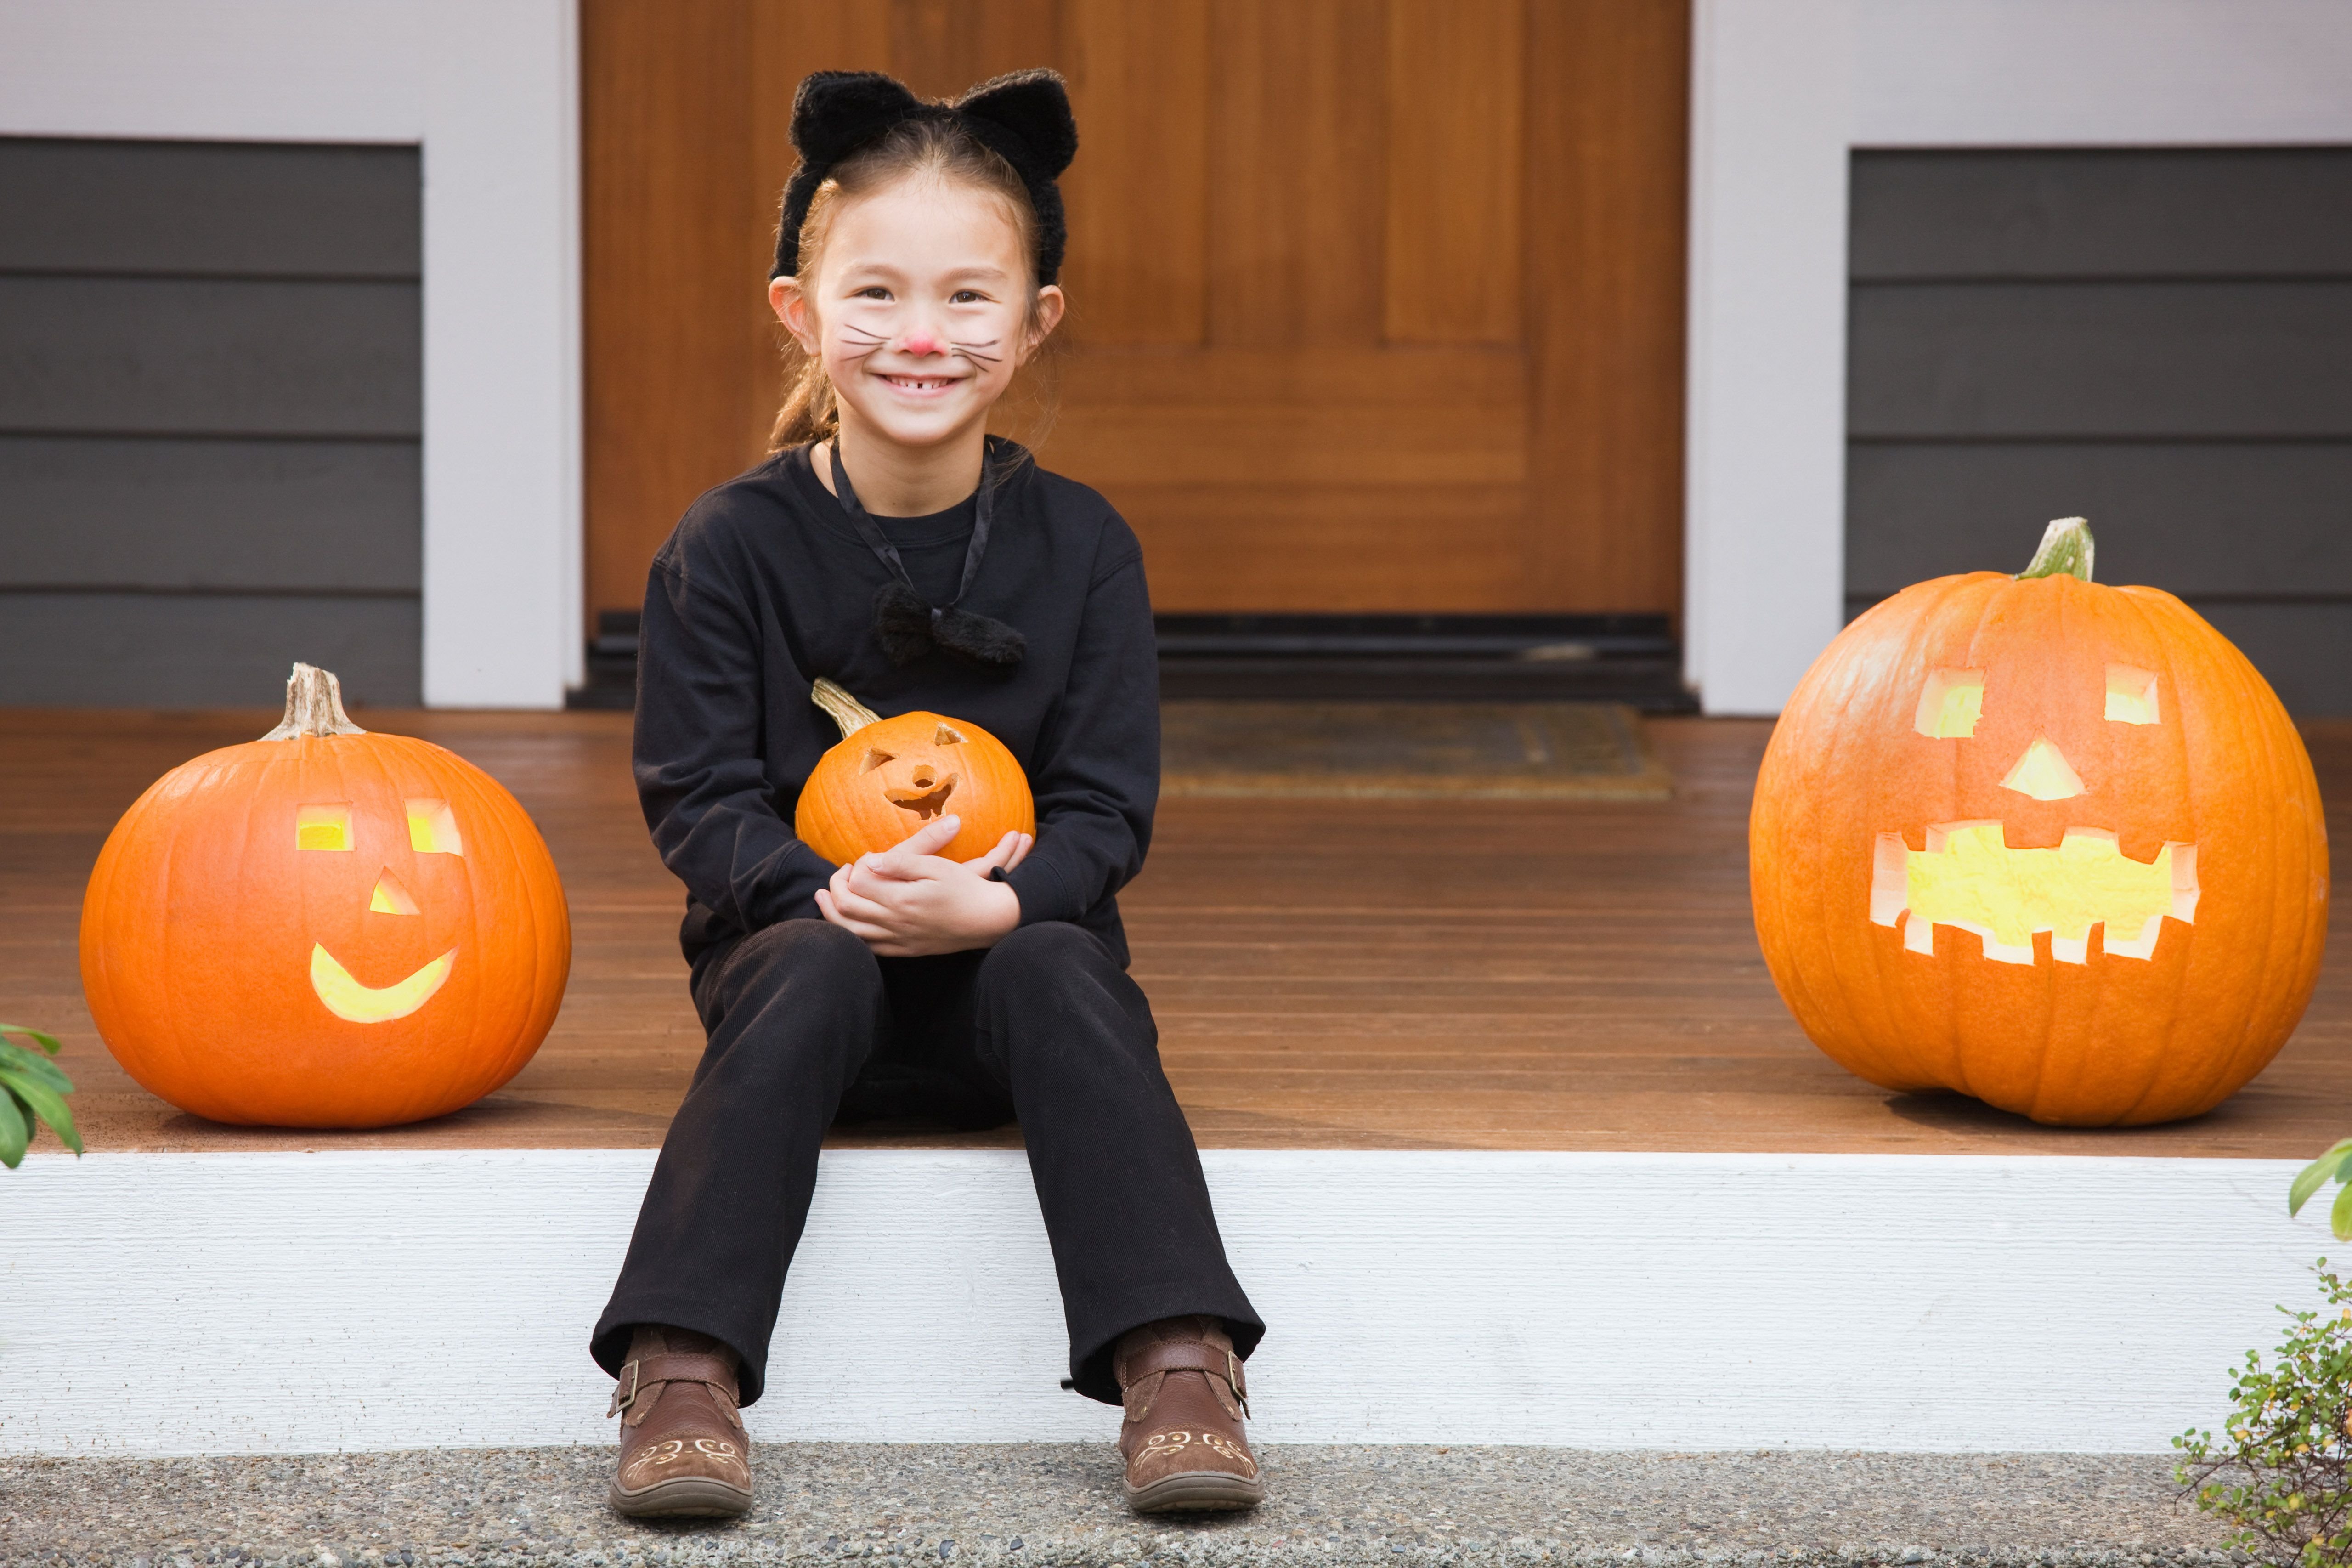 71869ada4 Cat Costumes for Kids - How to Make DIY Halloween Cat Costumes for ...